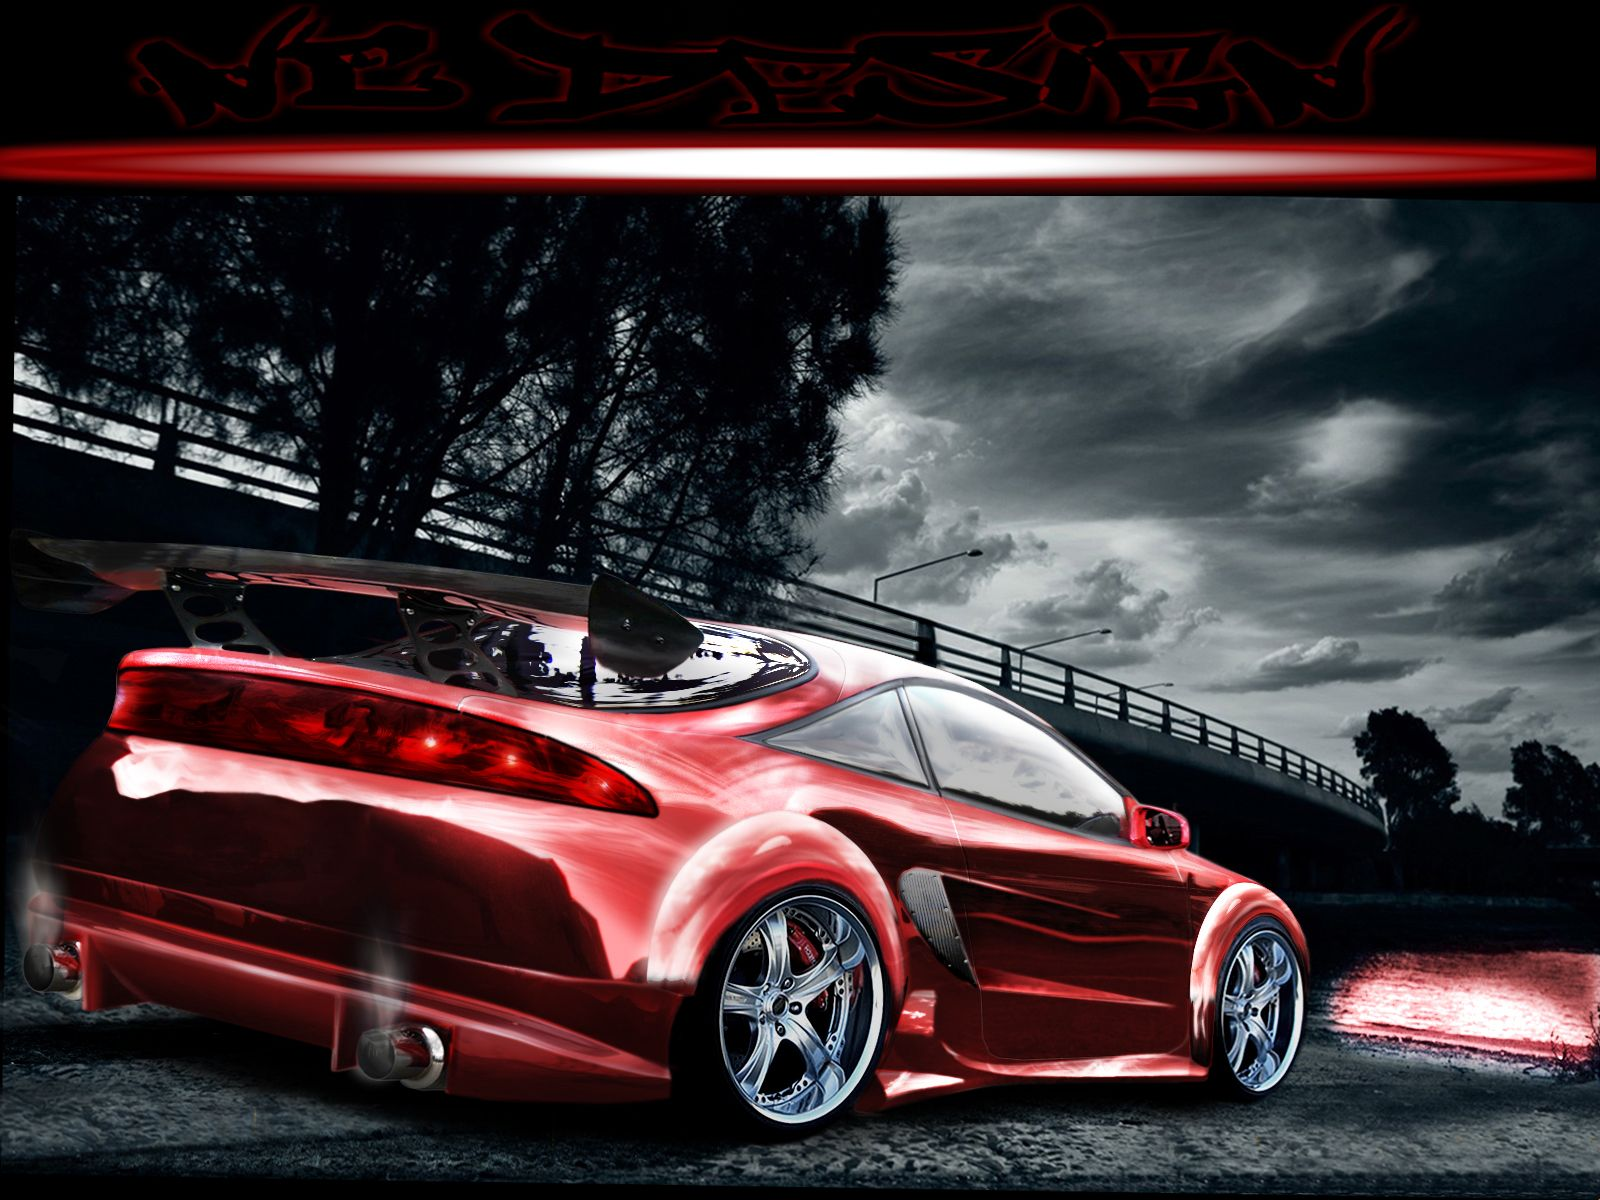 Mitsubishi Eclipse Gt Hd Wallpapers